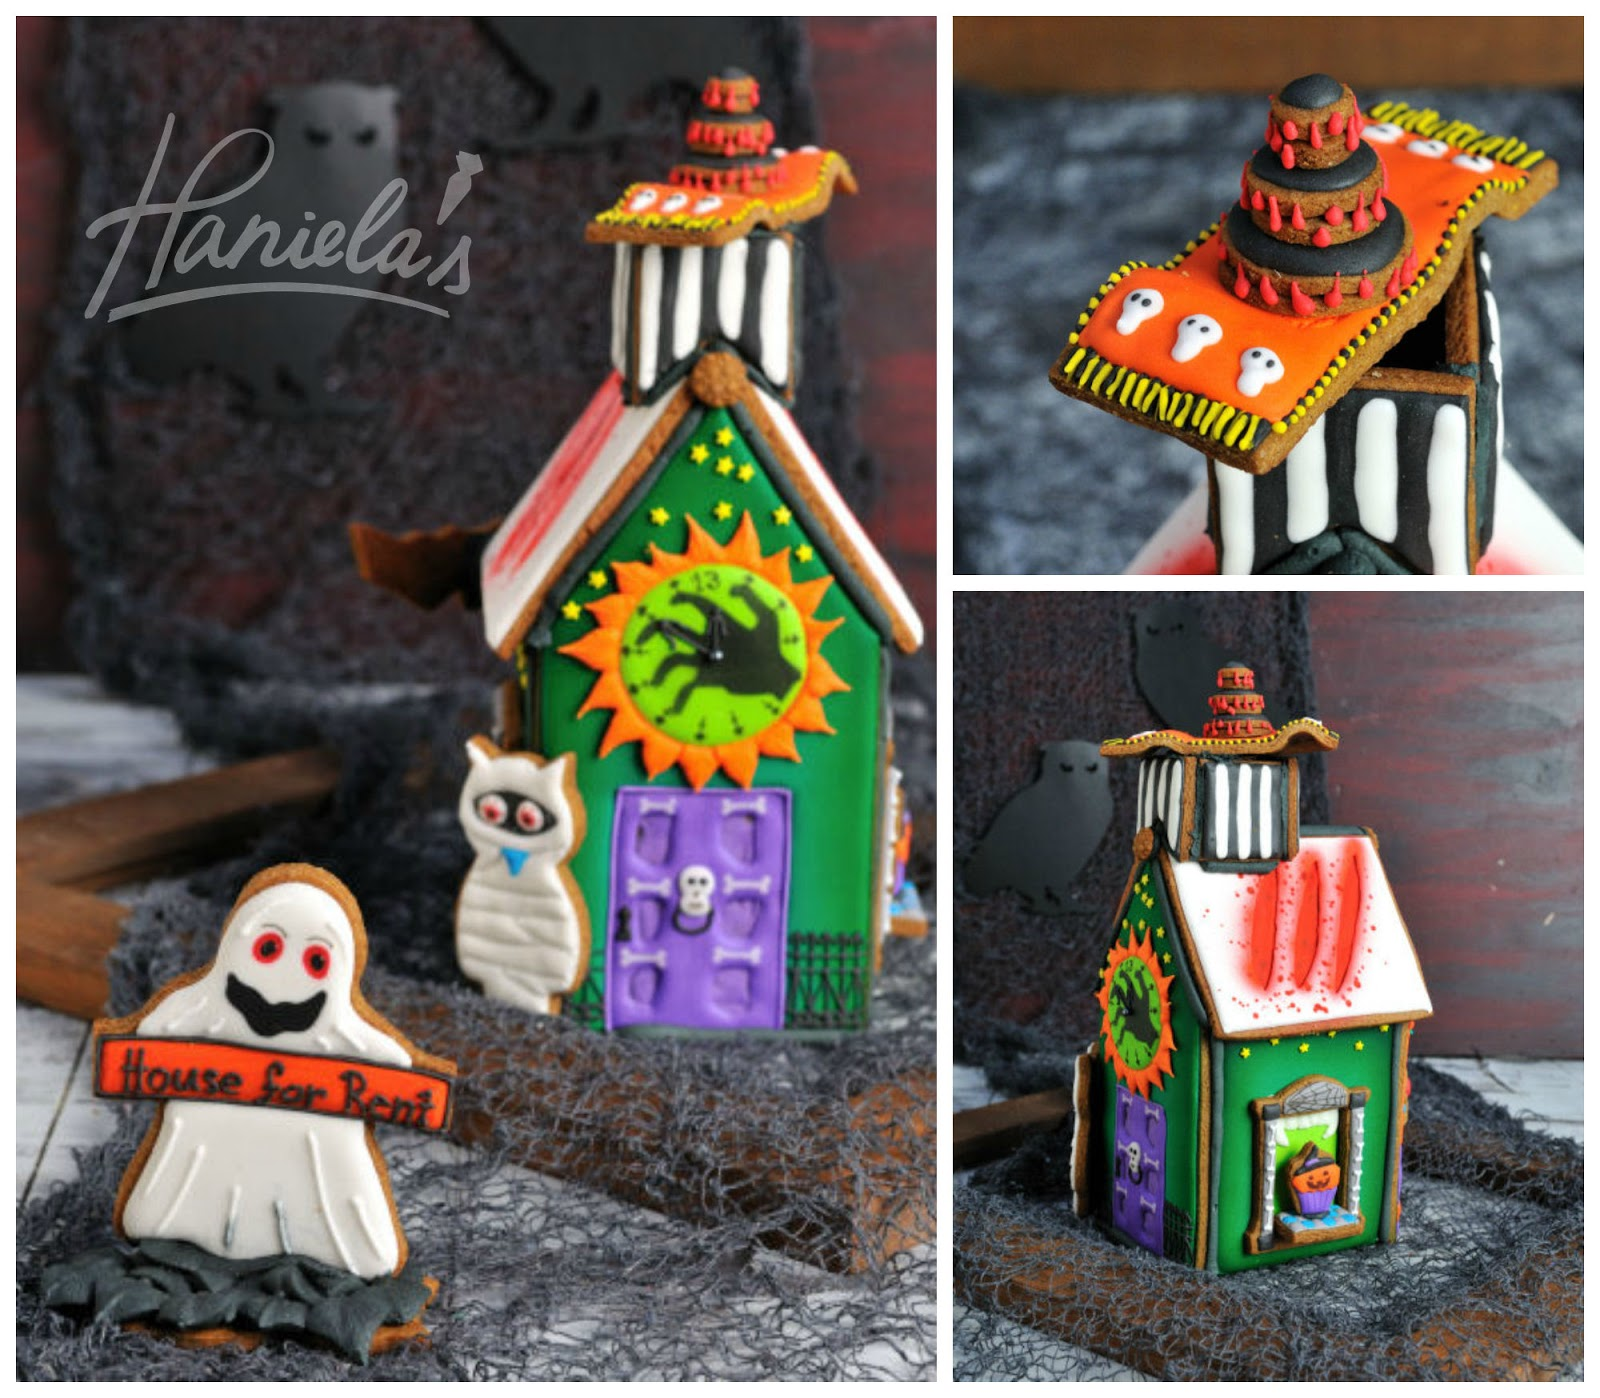 Haniela's: Haunted Gingerbread House For Halloween